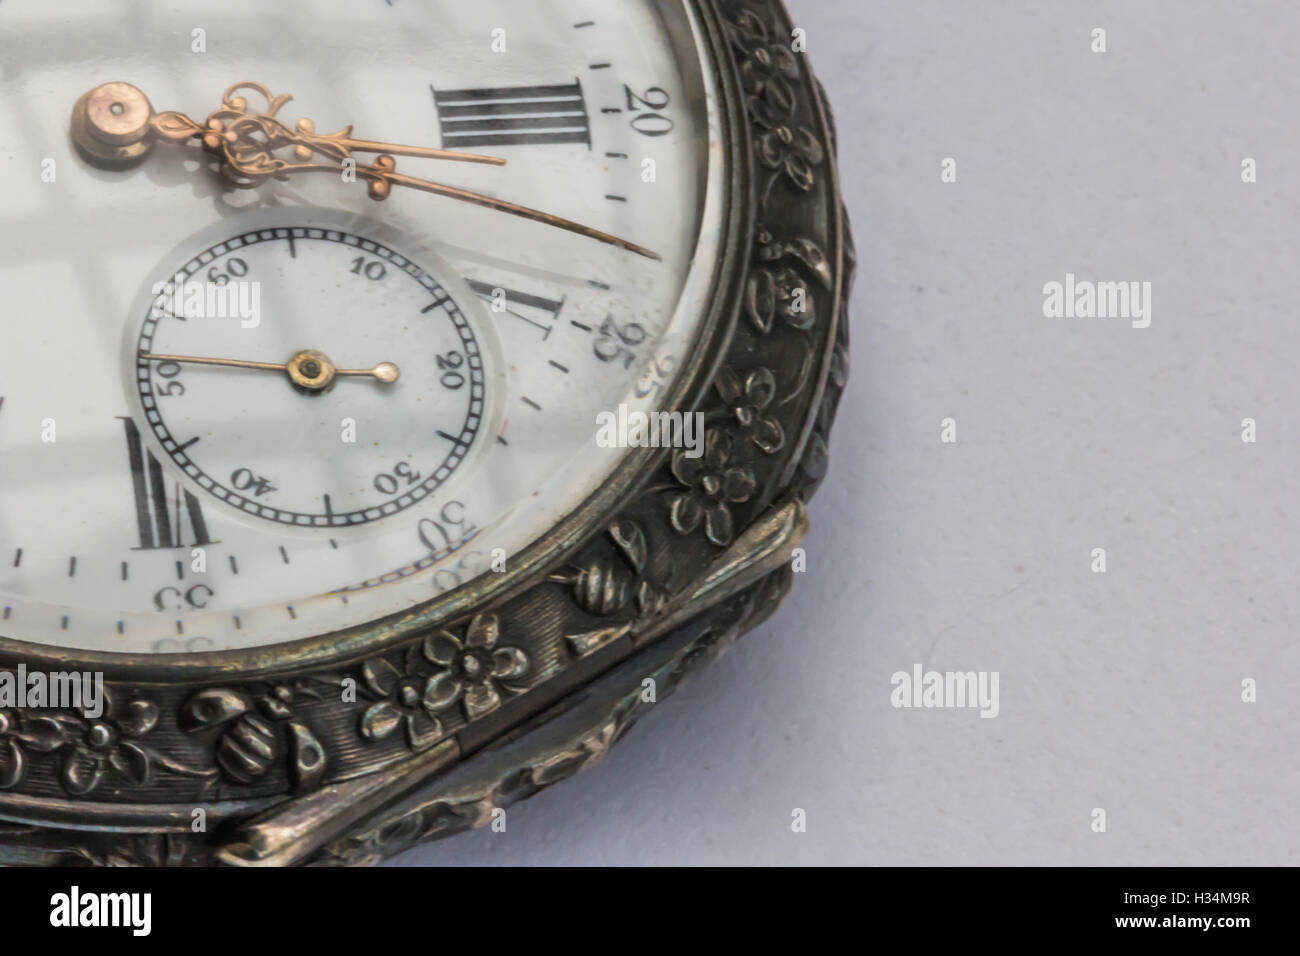 Old pocket watch from 1800 showing hour, minute, second hand. - Stock Image